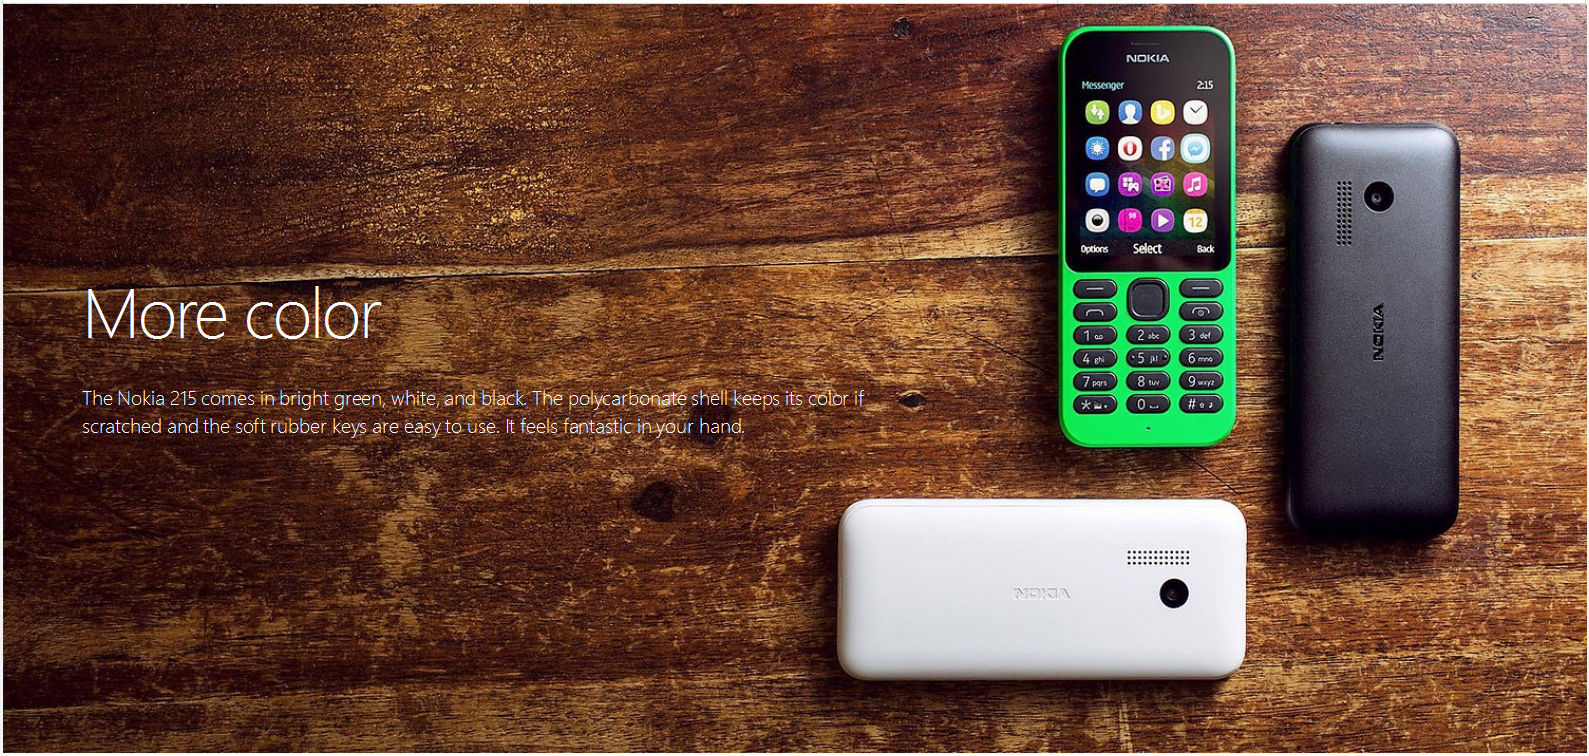 Microsoft surprises loyalists: Launches Nokia 215 Series 30  feature phone costing just £20